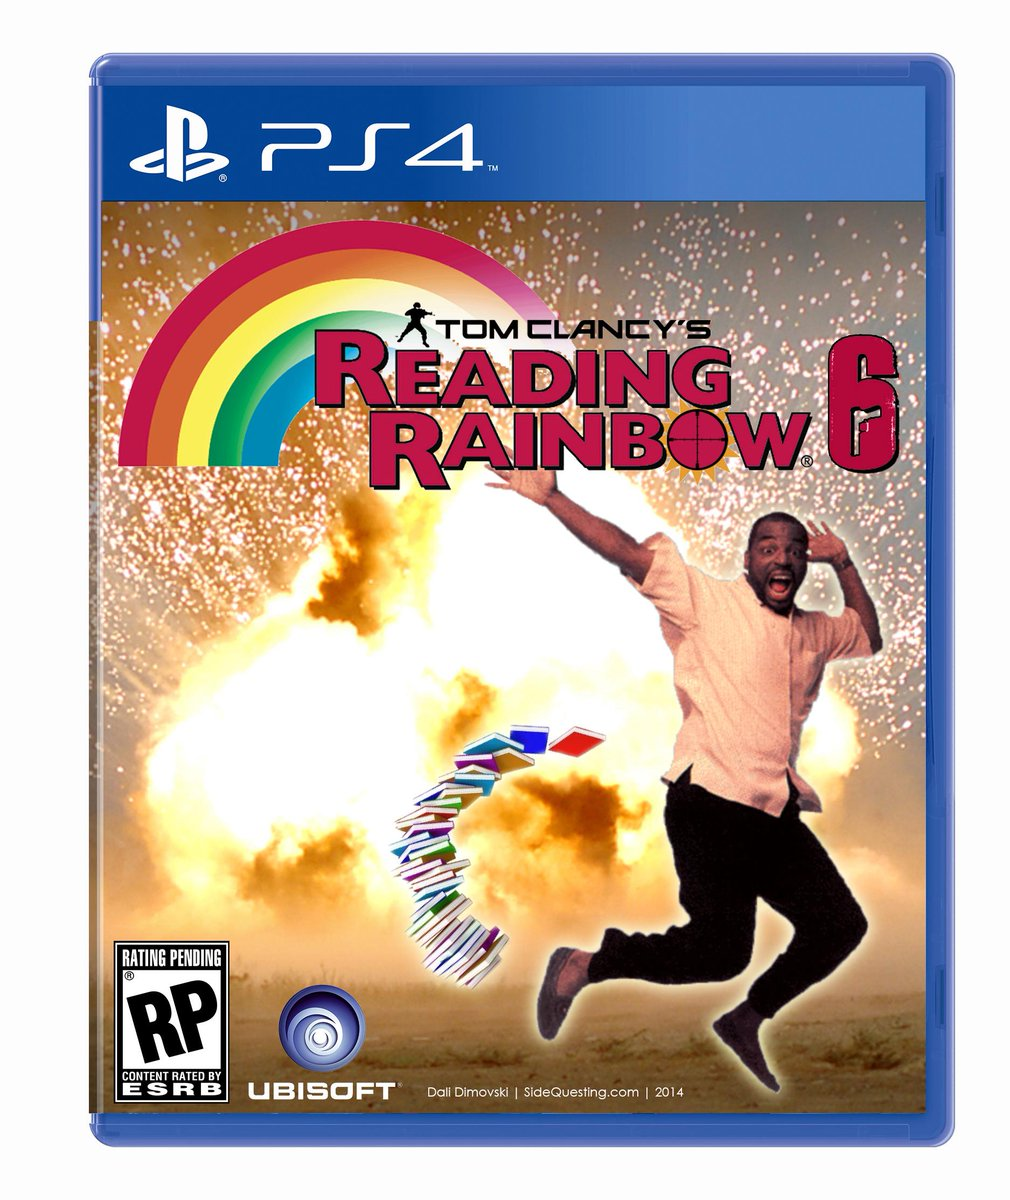 Tom Clancy's Reading Rainbow Six #VideoGameSitcoms @midnight http://t.co/GQGJyGp2HN